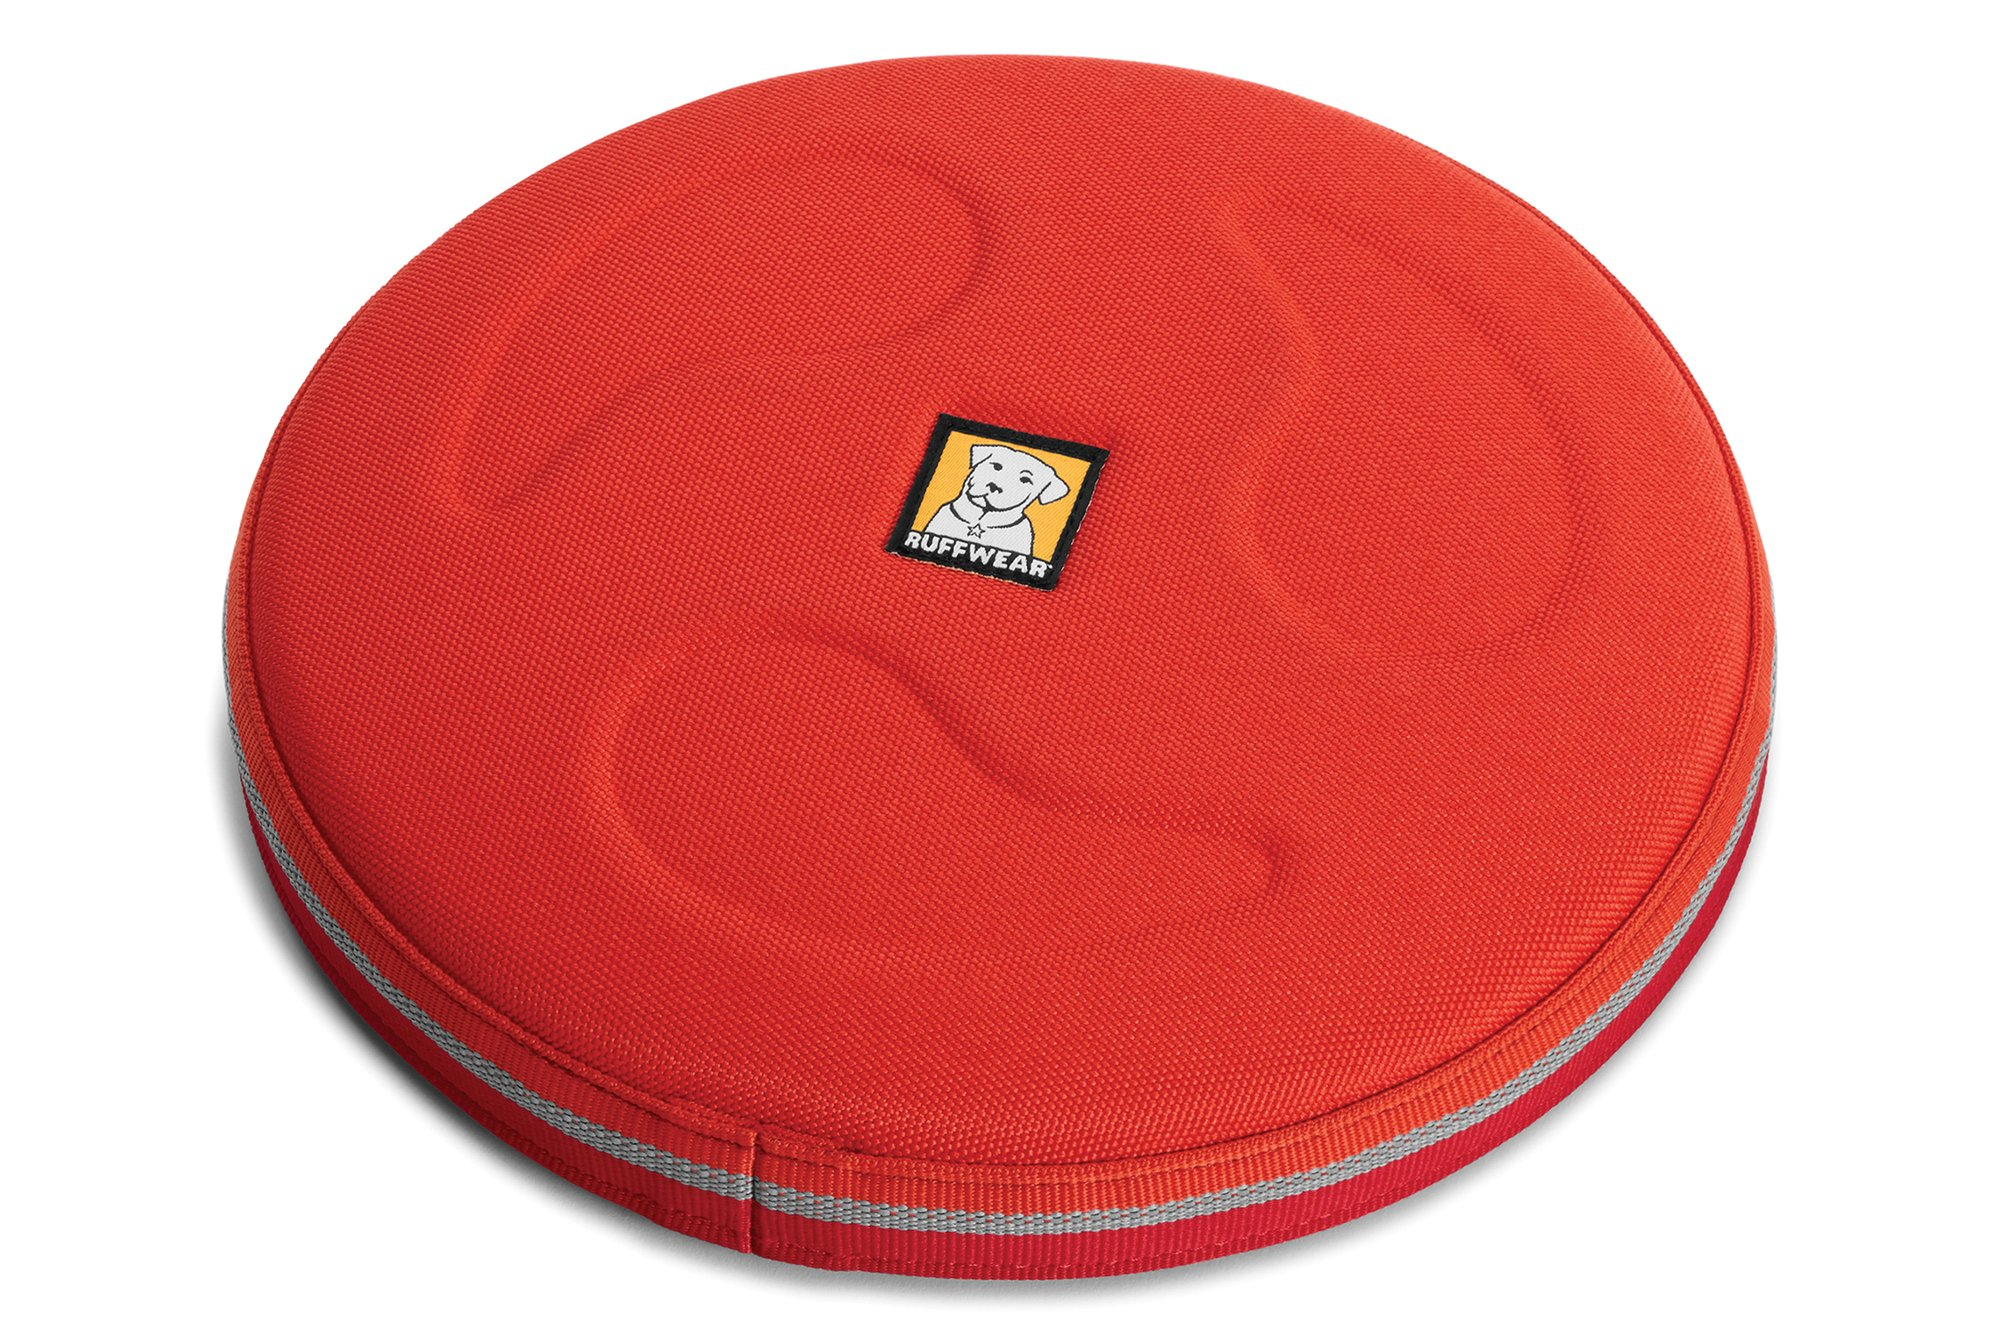 RUFFWEAR - Hover Craft Flying Disc for Dogs, Sockeye Red, Large